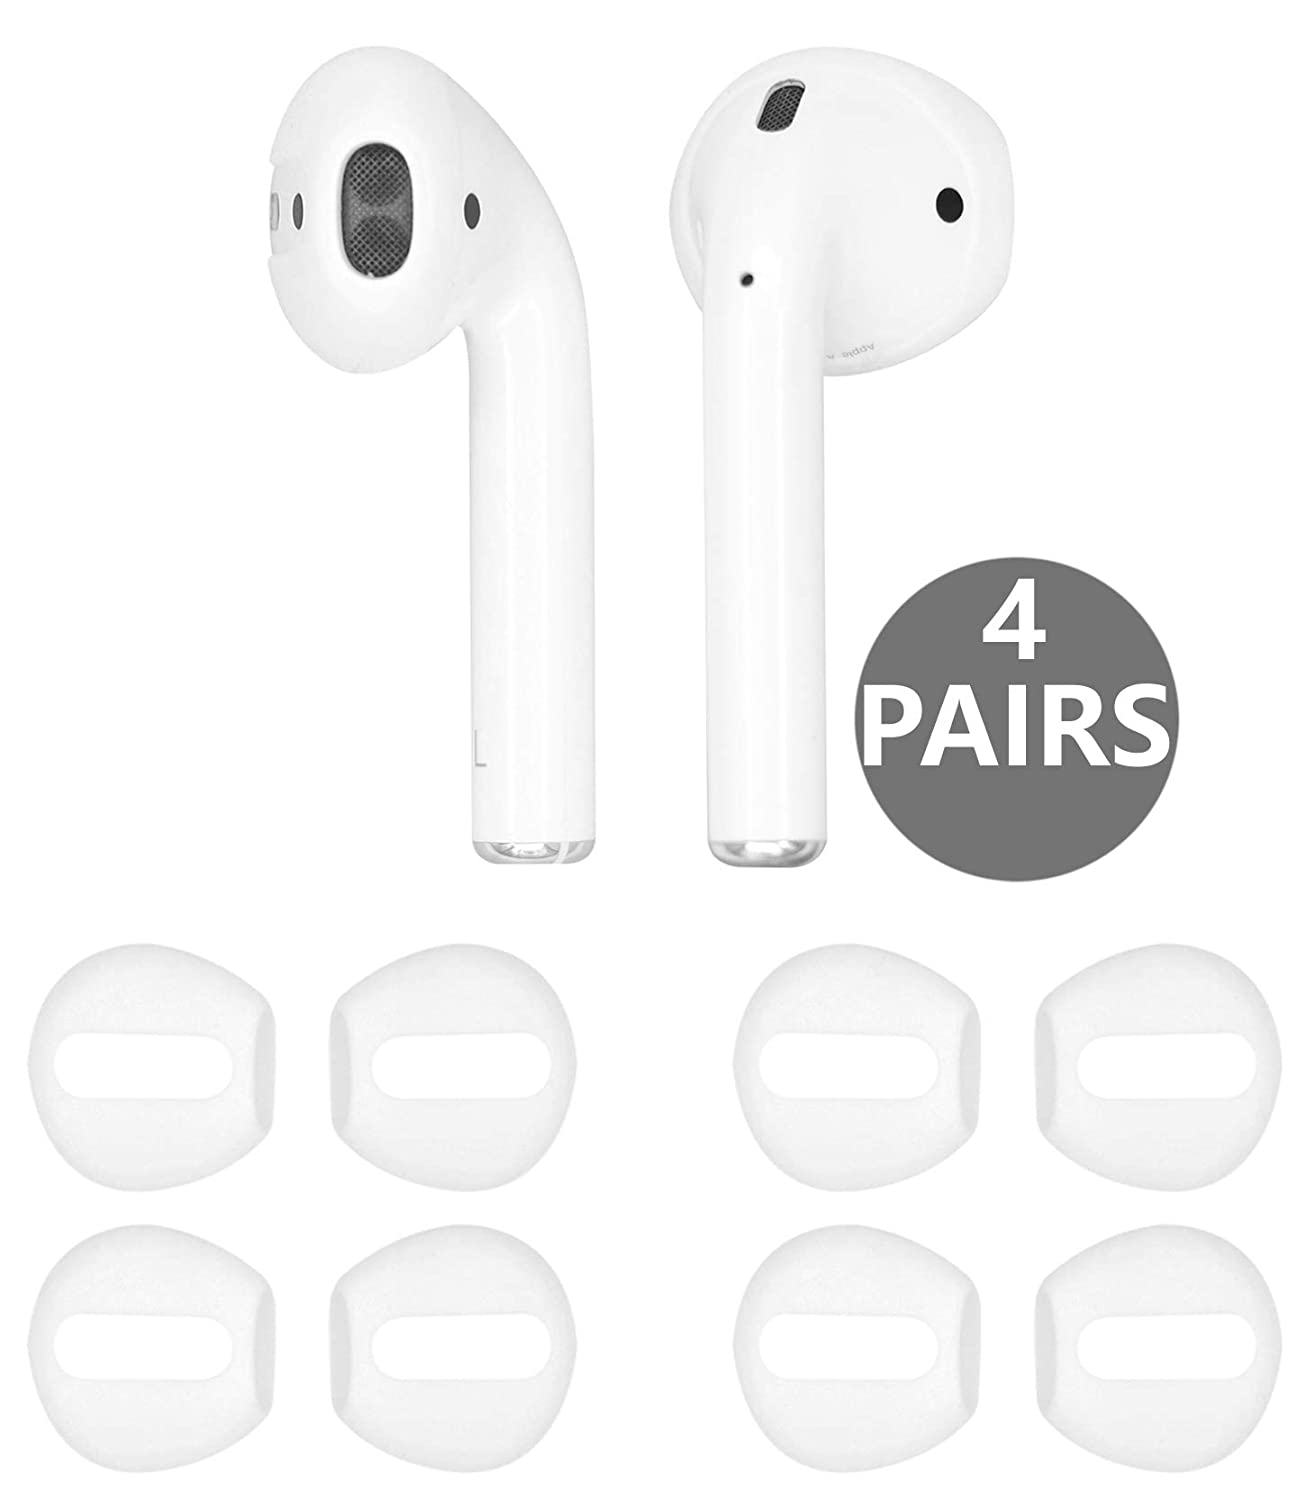 ec0d173e5d9 (Fit in Case) 4 Pairs Replacement Super Thin Slim Silicone Earbuds Ear Tips  and Covers Skin Accessories for Apple AirPods or EarPods Headphones [ Fit  in ...